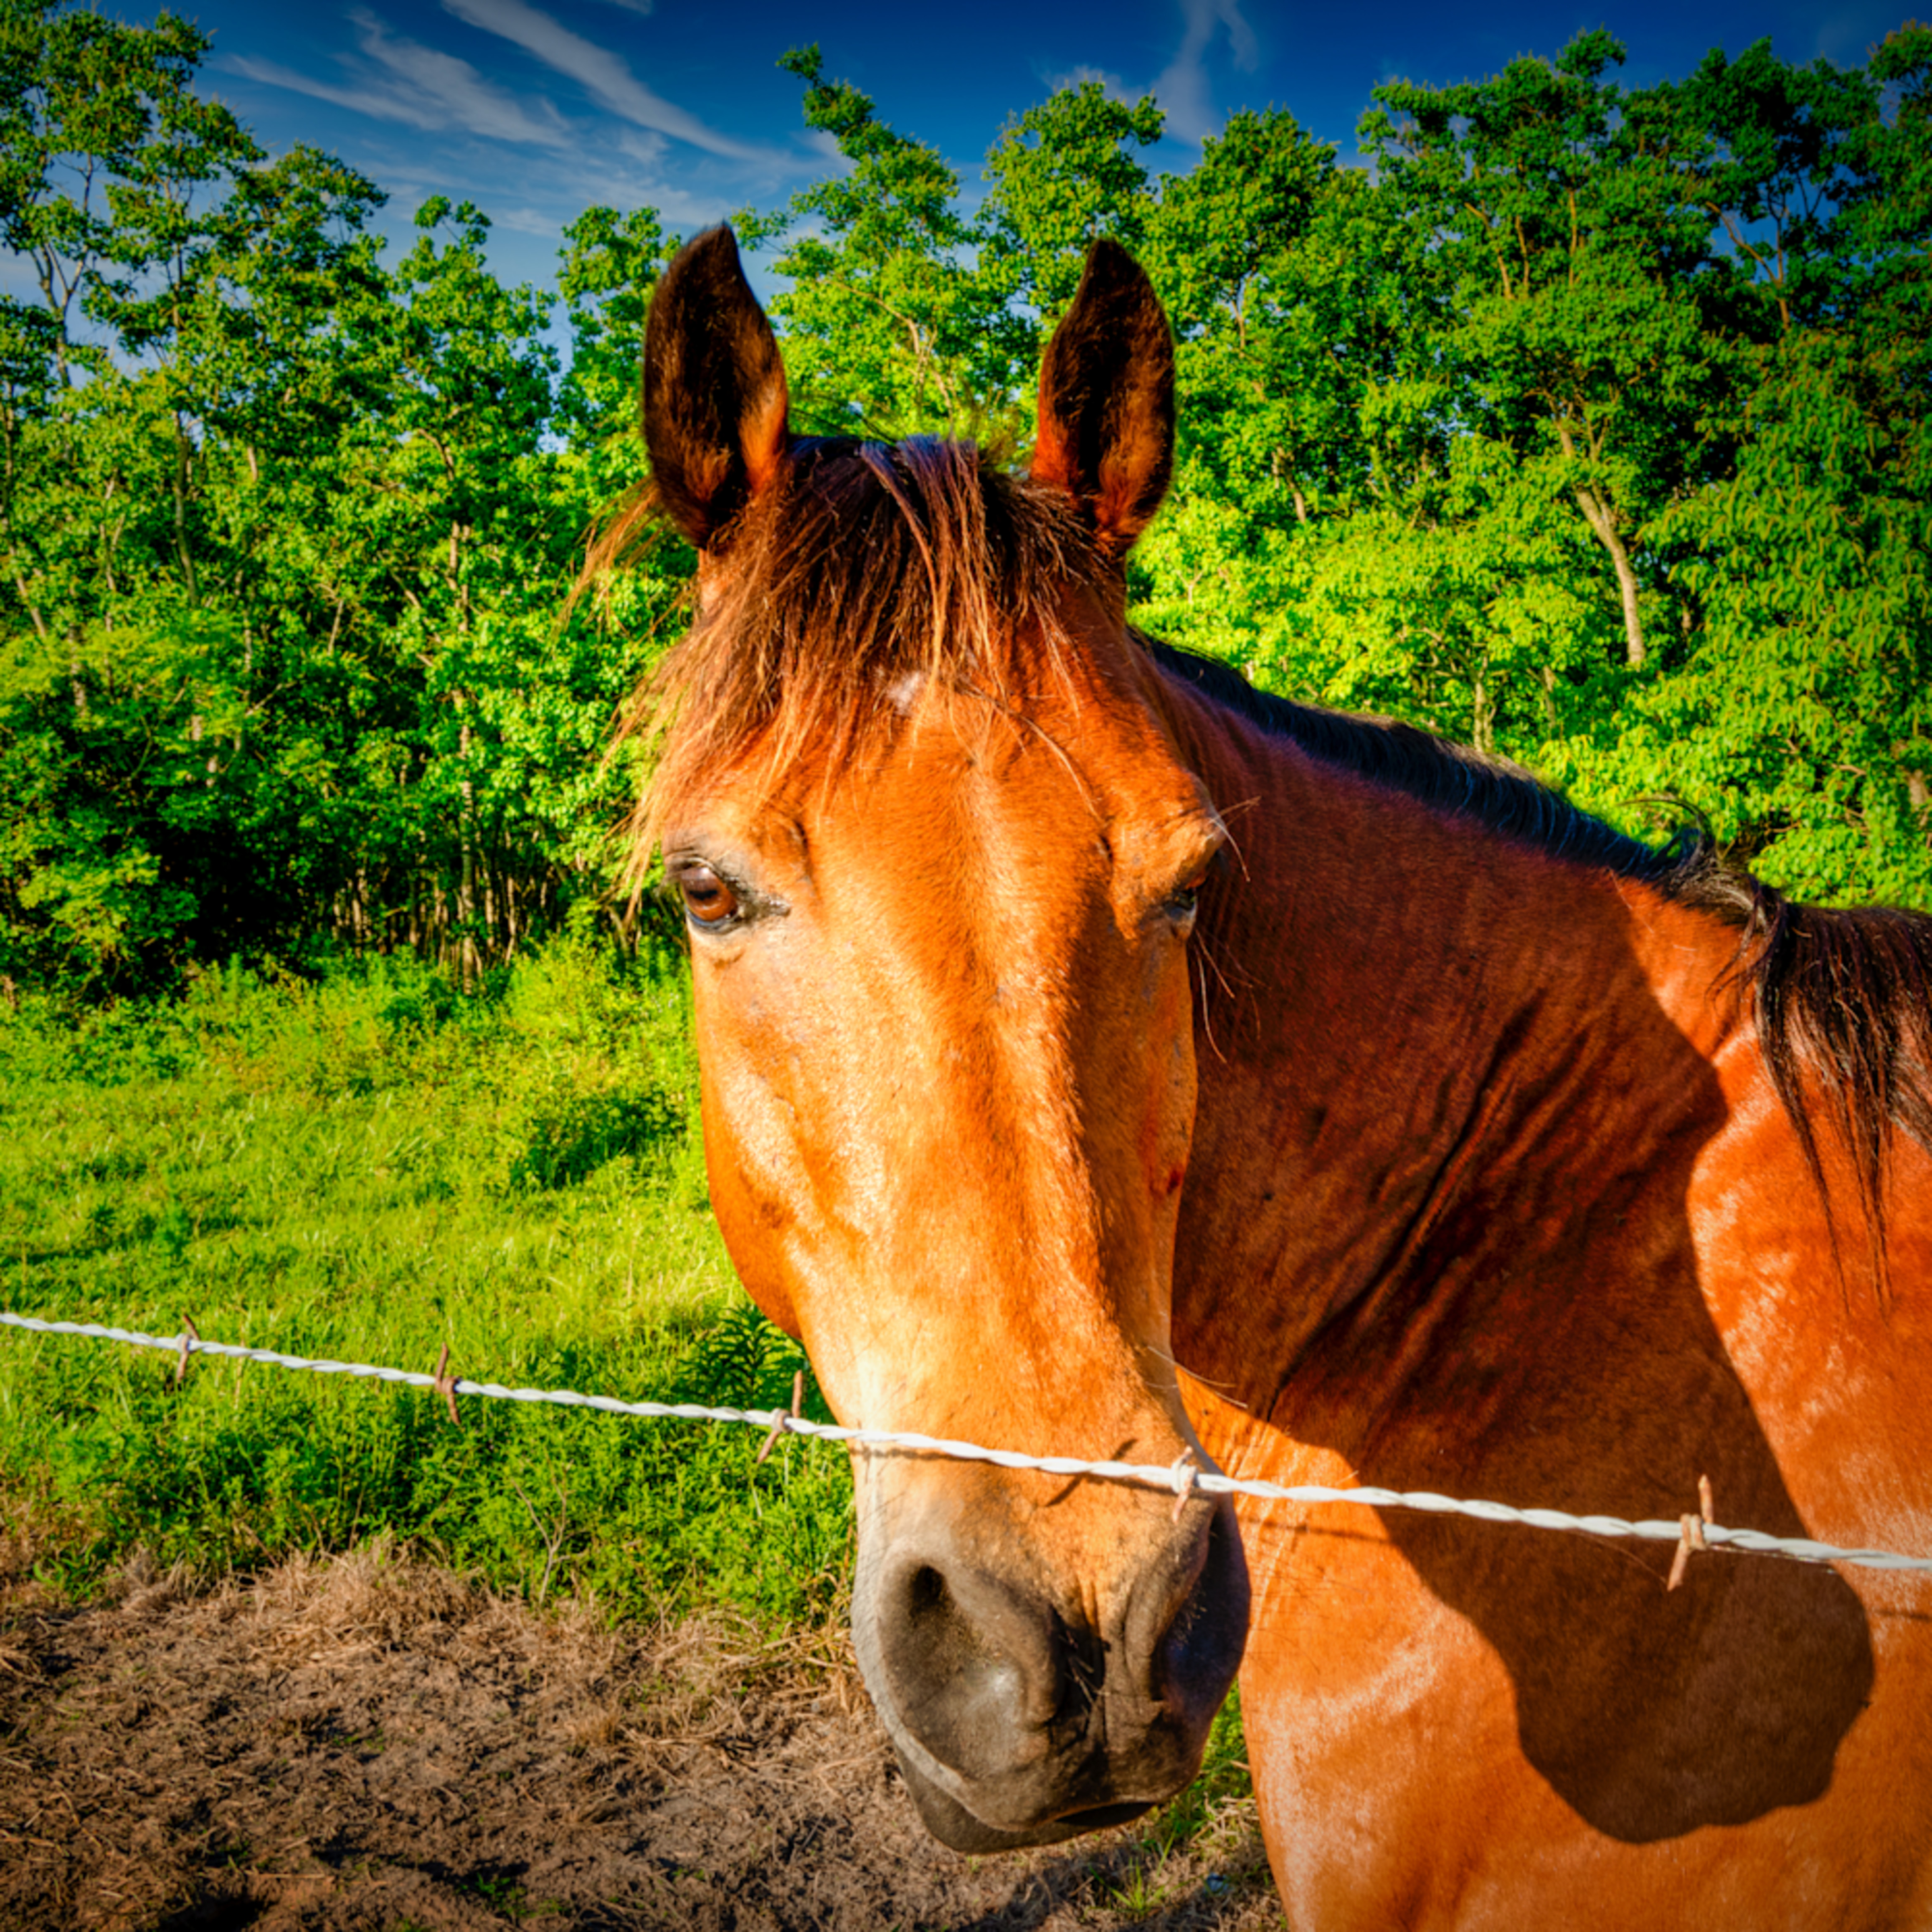 Horse in pasture y4rzsk